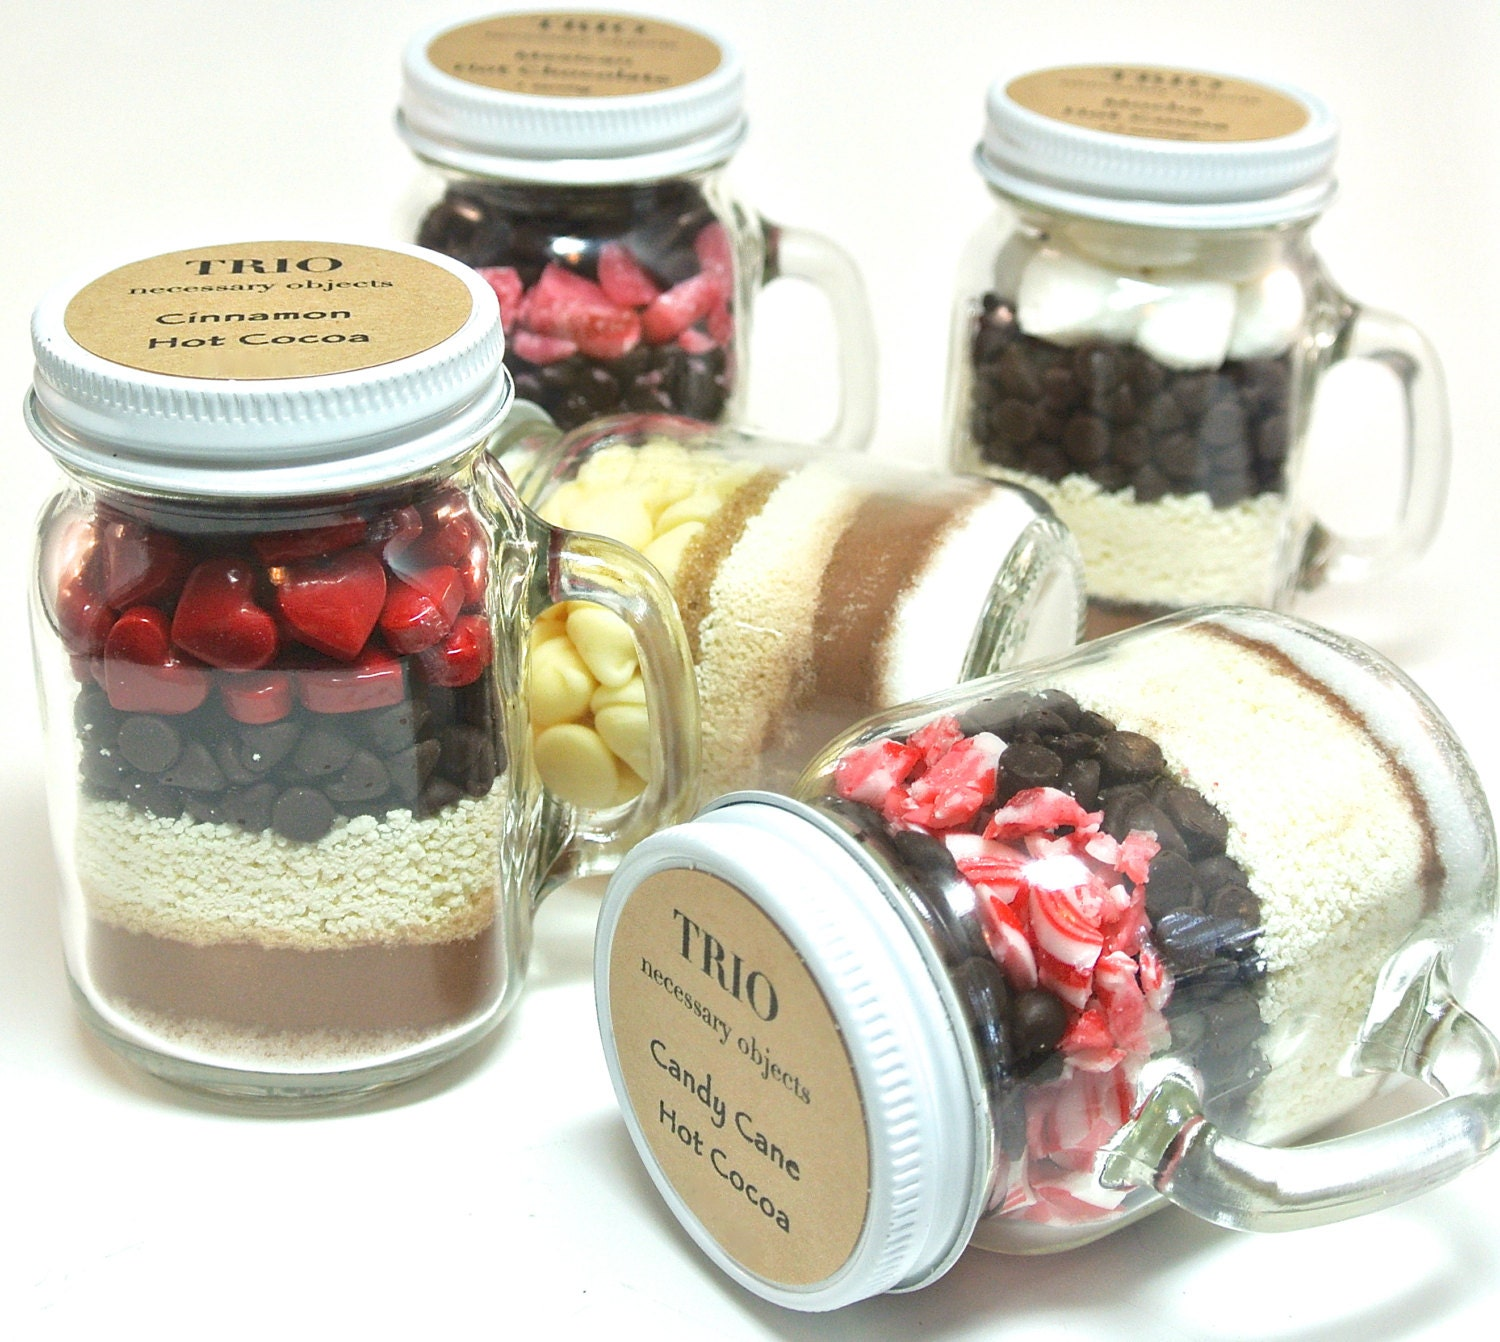 Hot Chocolate Wedding Favor 12 Mini 4 oz Mason Jar Mugs Hot